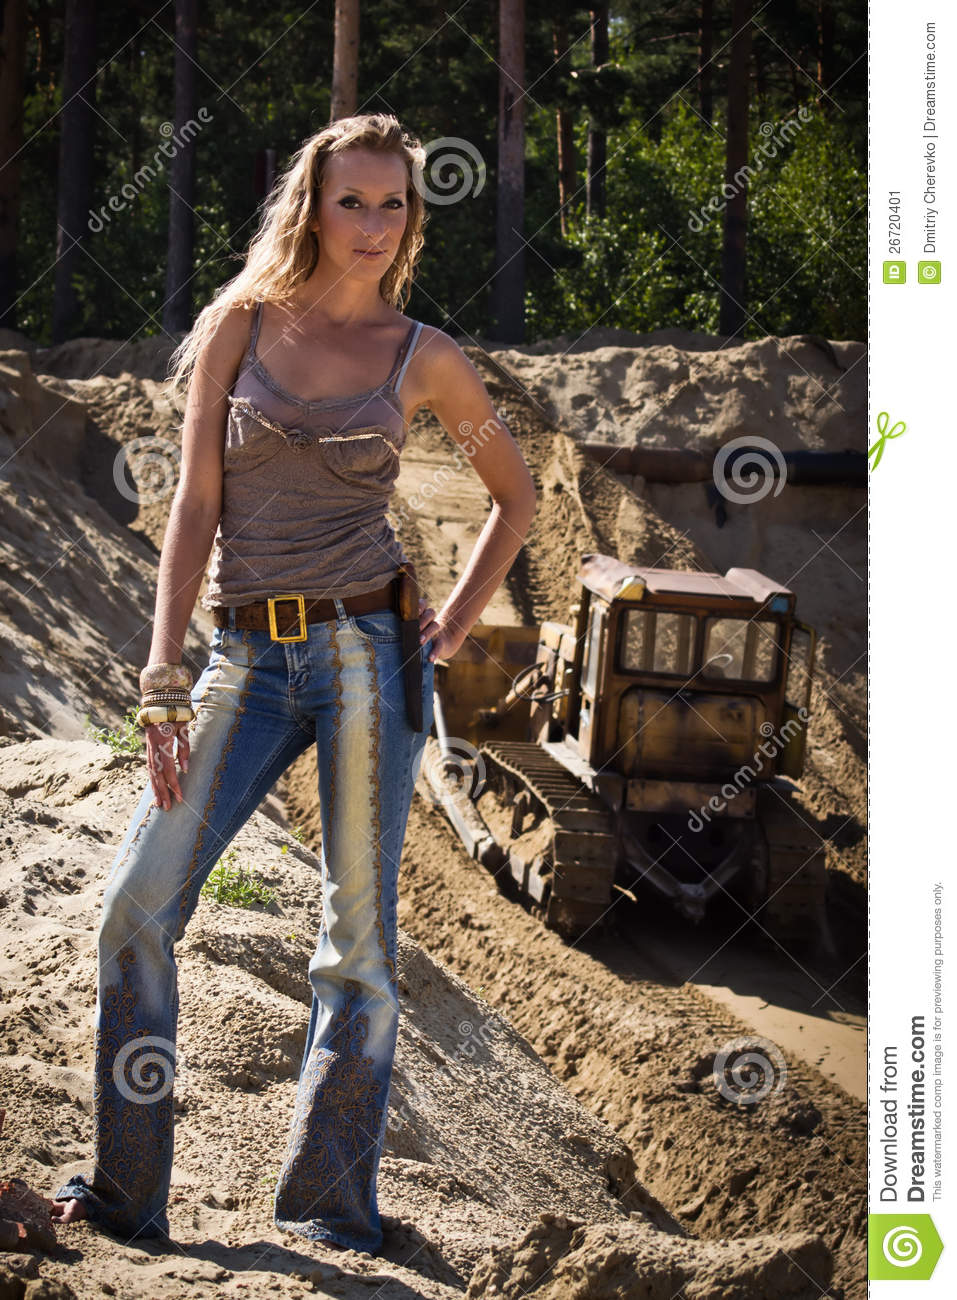 Cowgirl In Jeans Stands Against The Sand Pit Stock Image